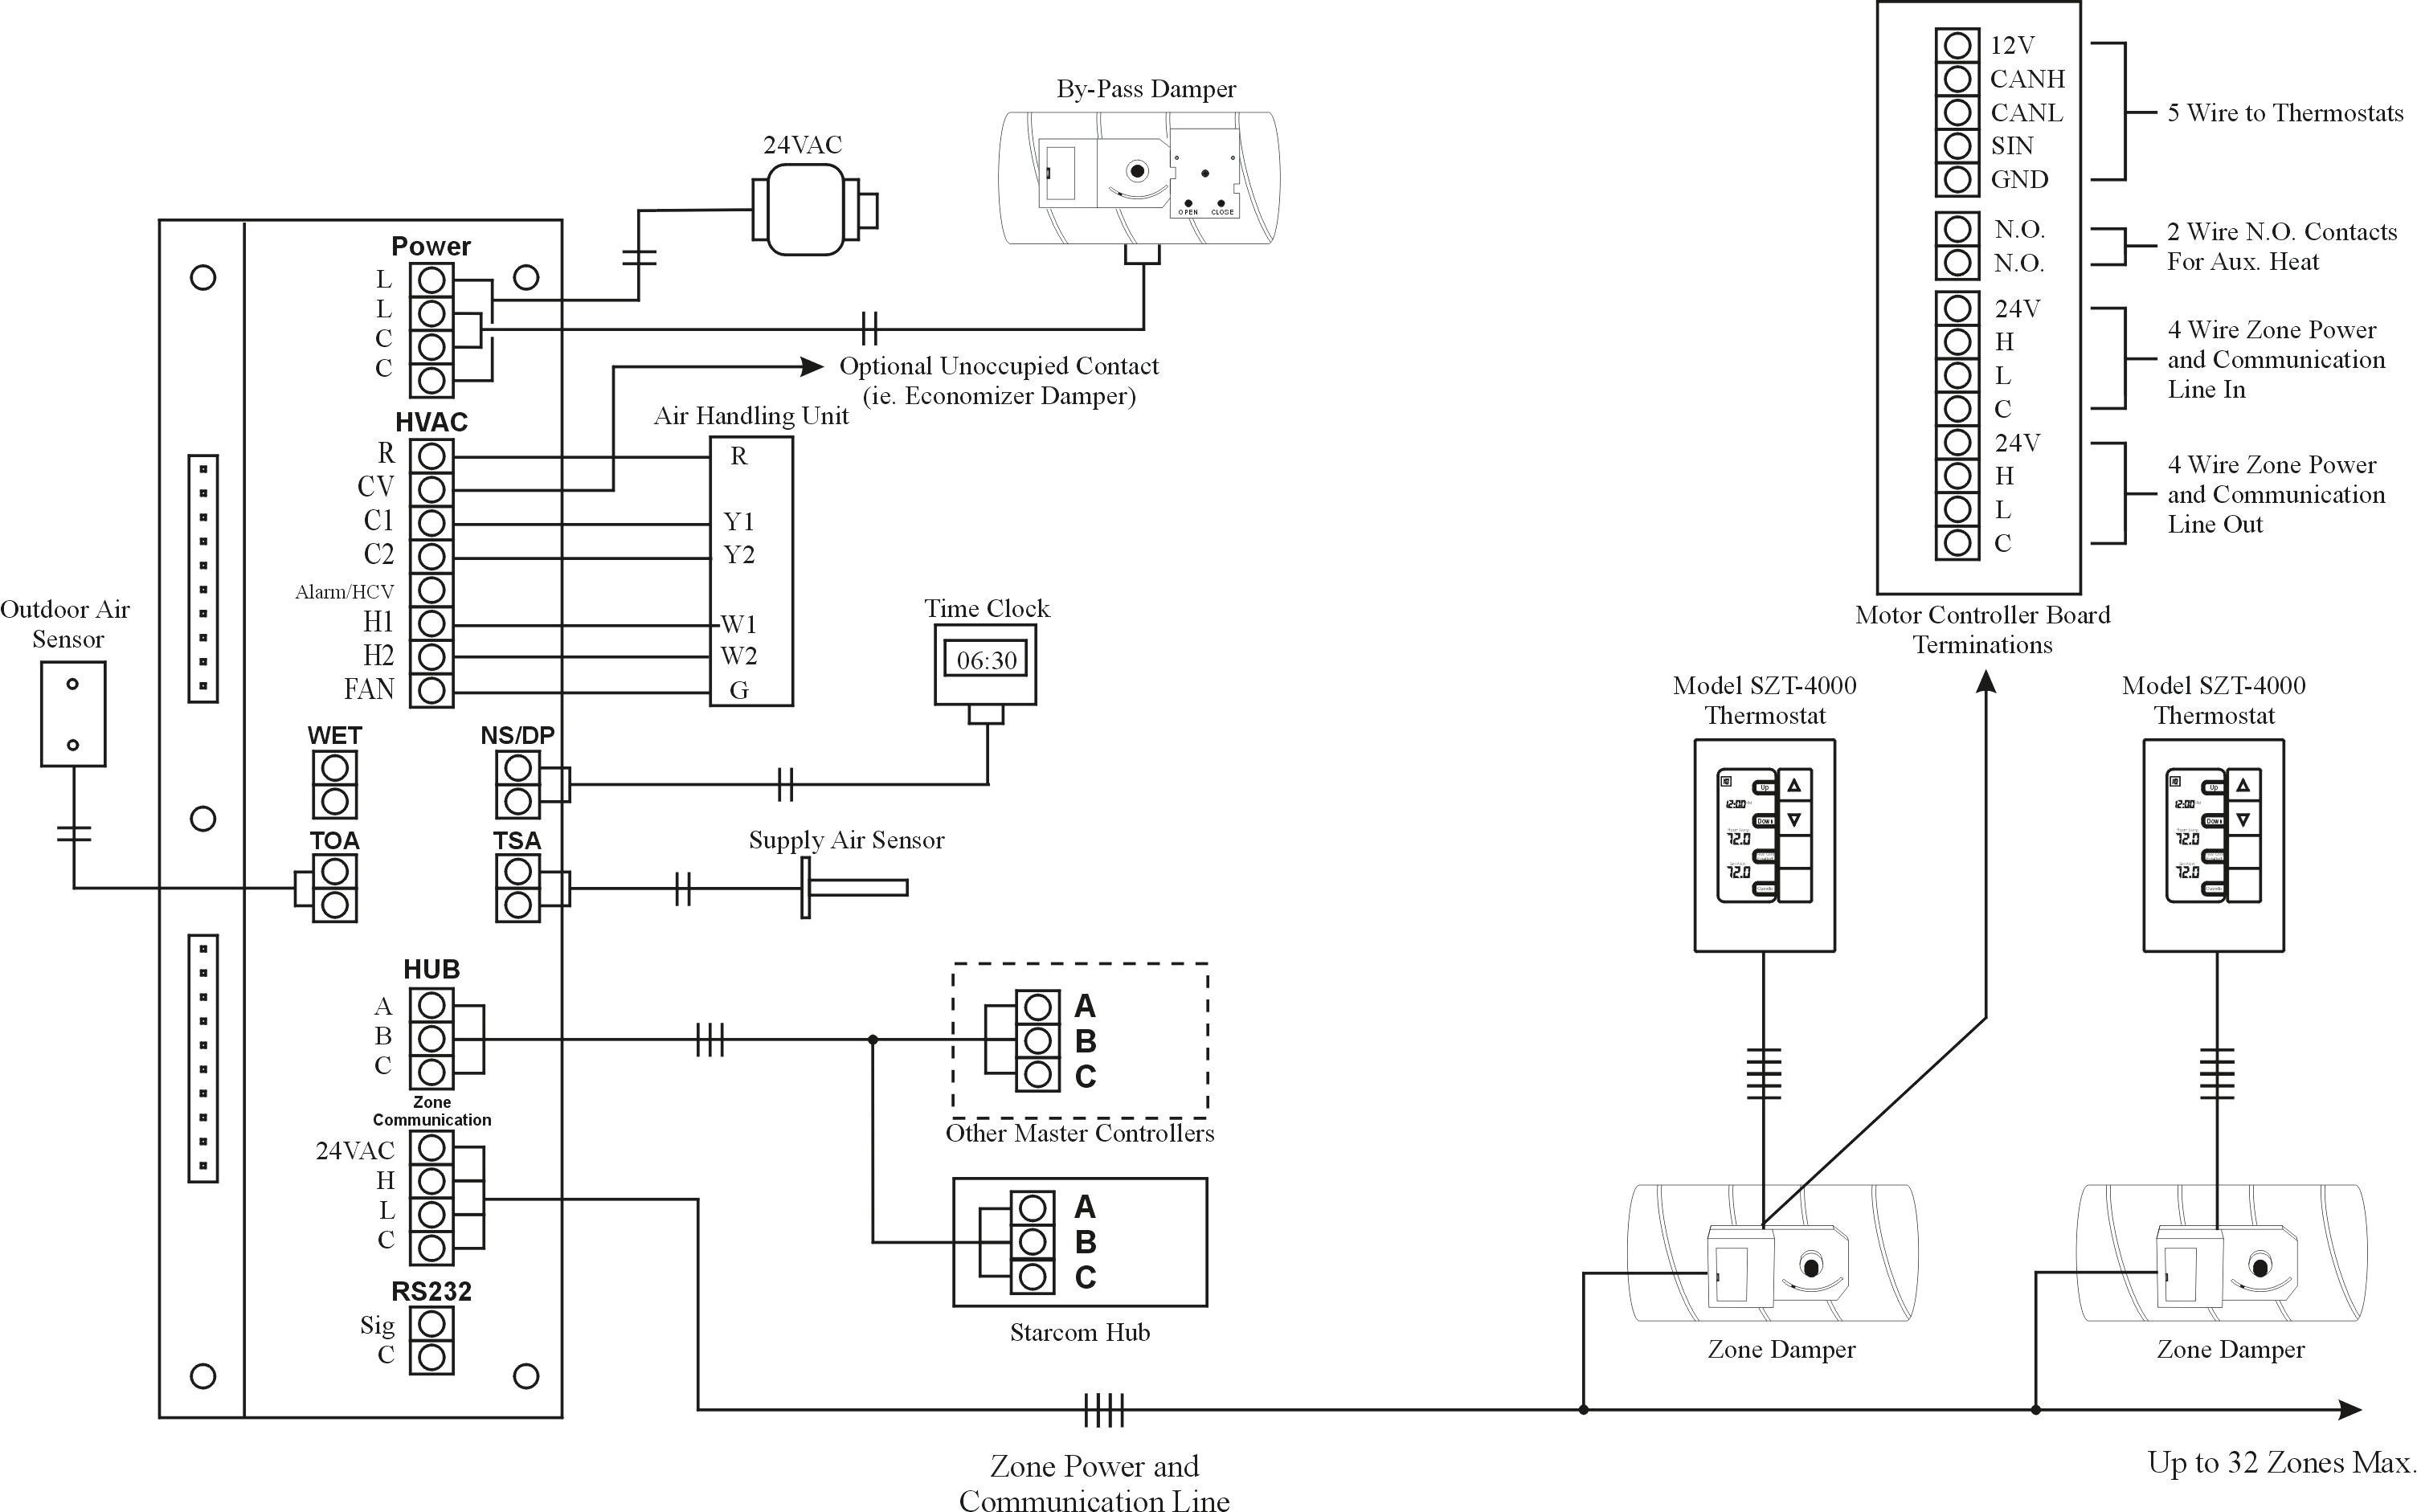 Goodman Furnace thermostat Wiring Diagram | Free Wiring Diagram on